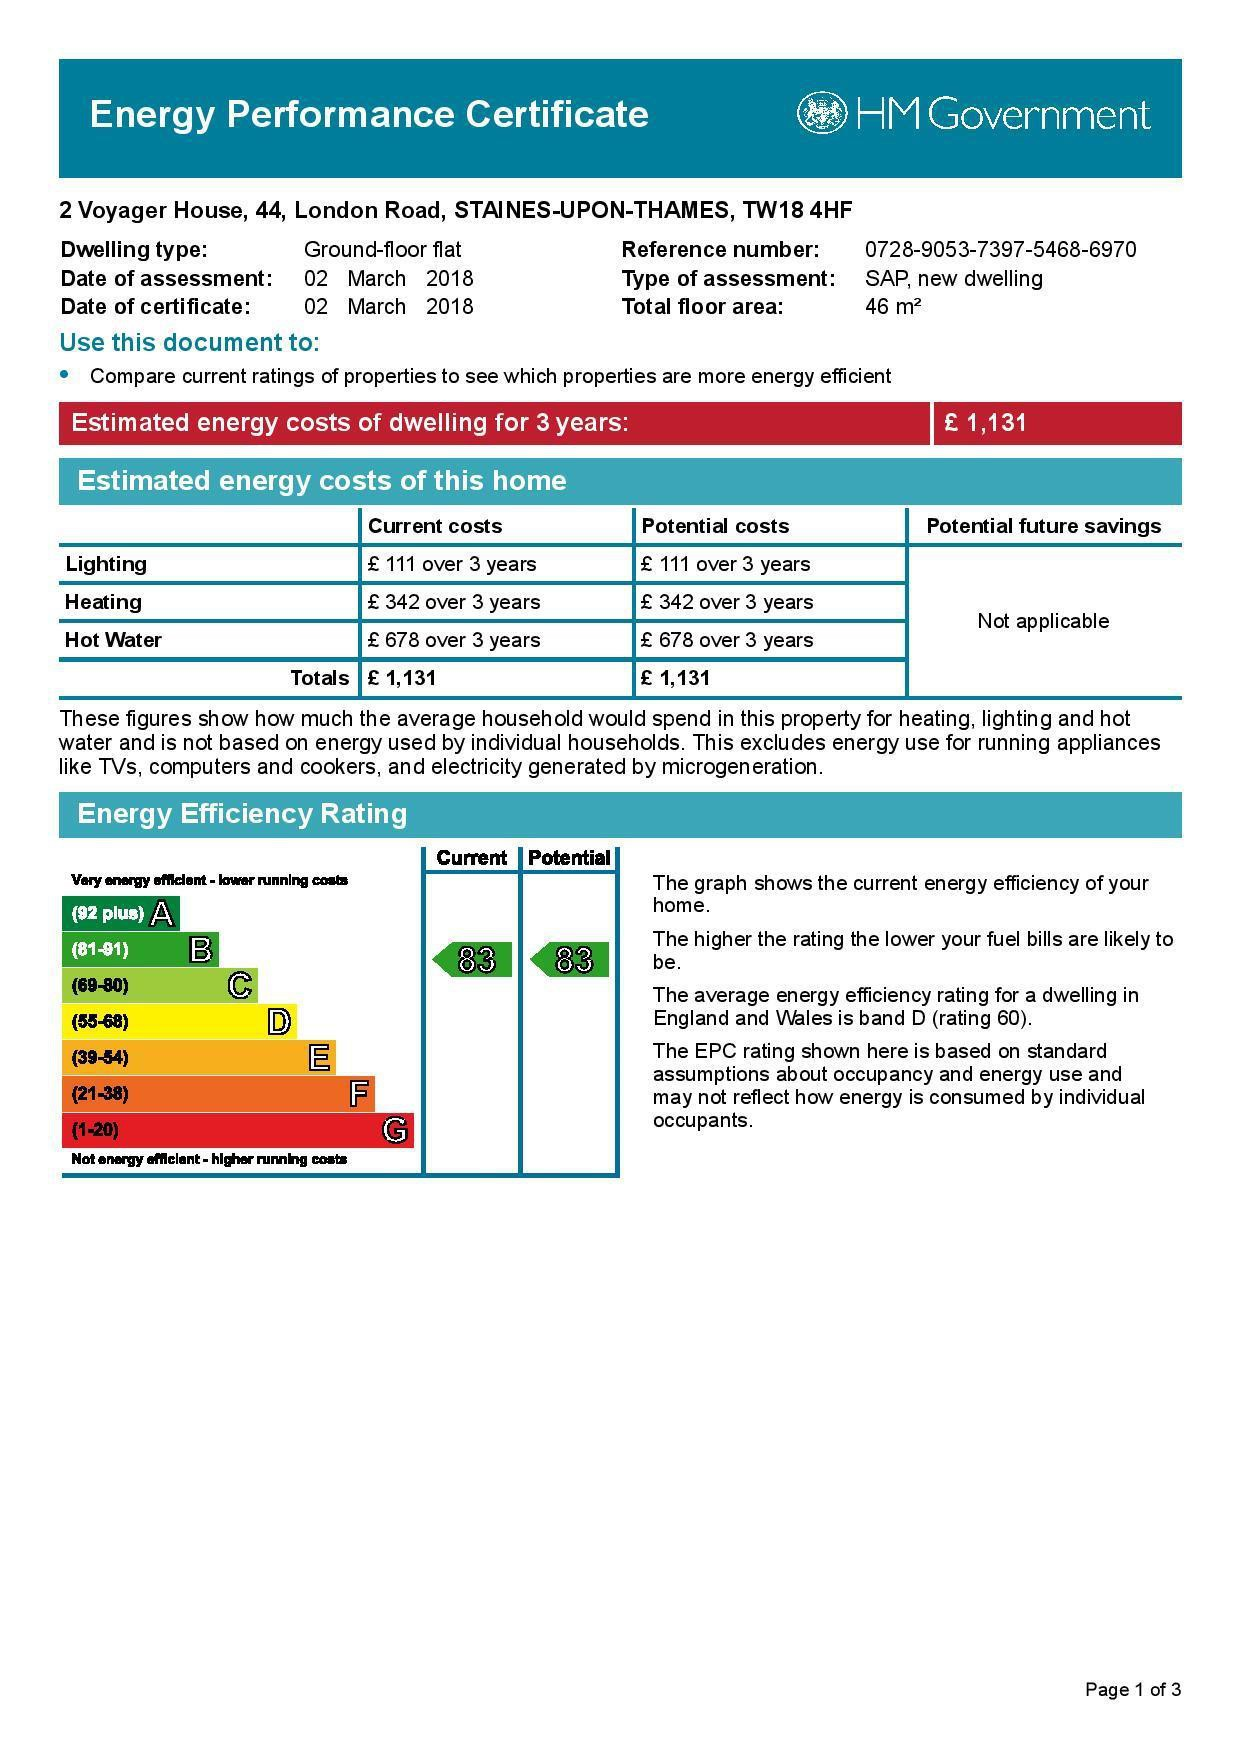 EPC Graph for 2 Voyager House, 44 London Road, Staines-Upon-Thames TW18 4HF